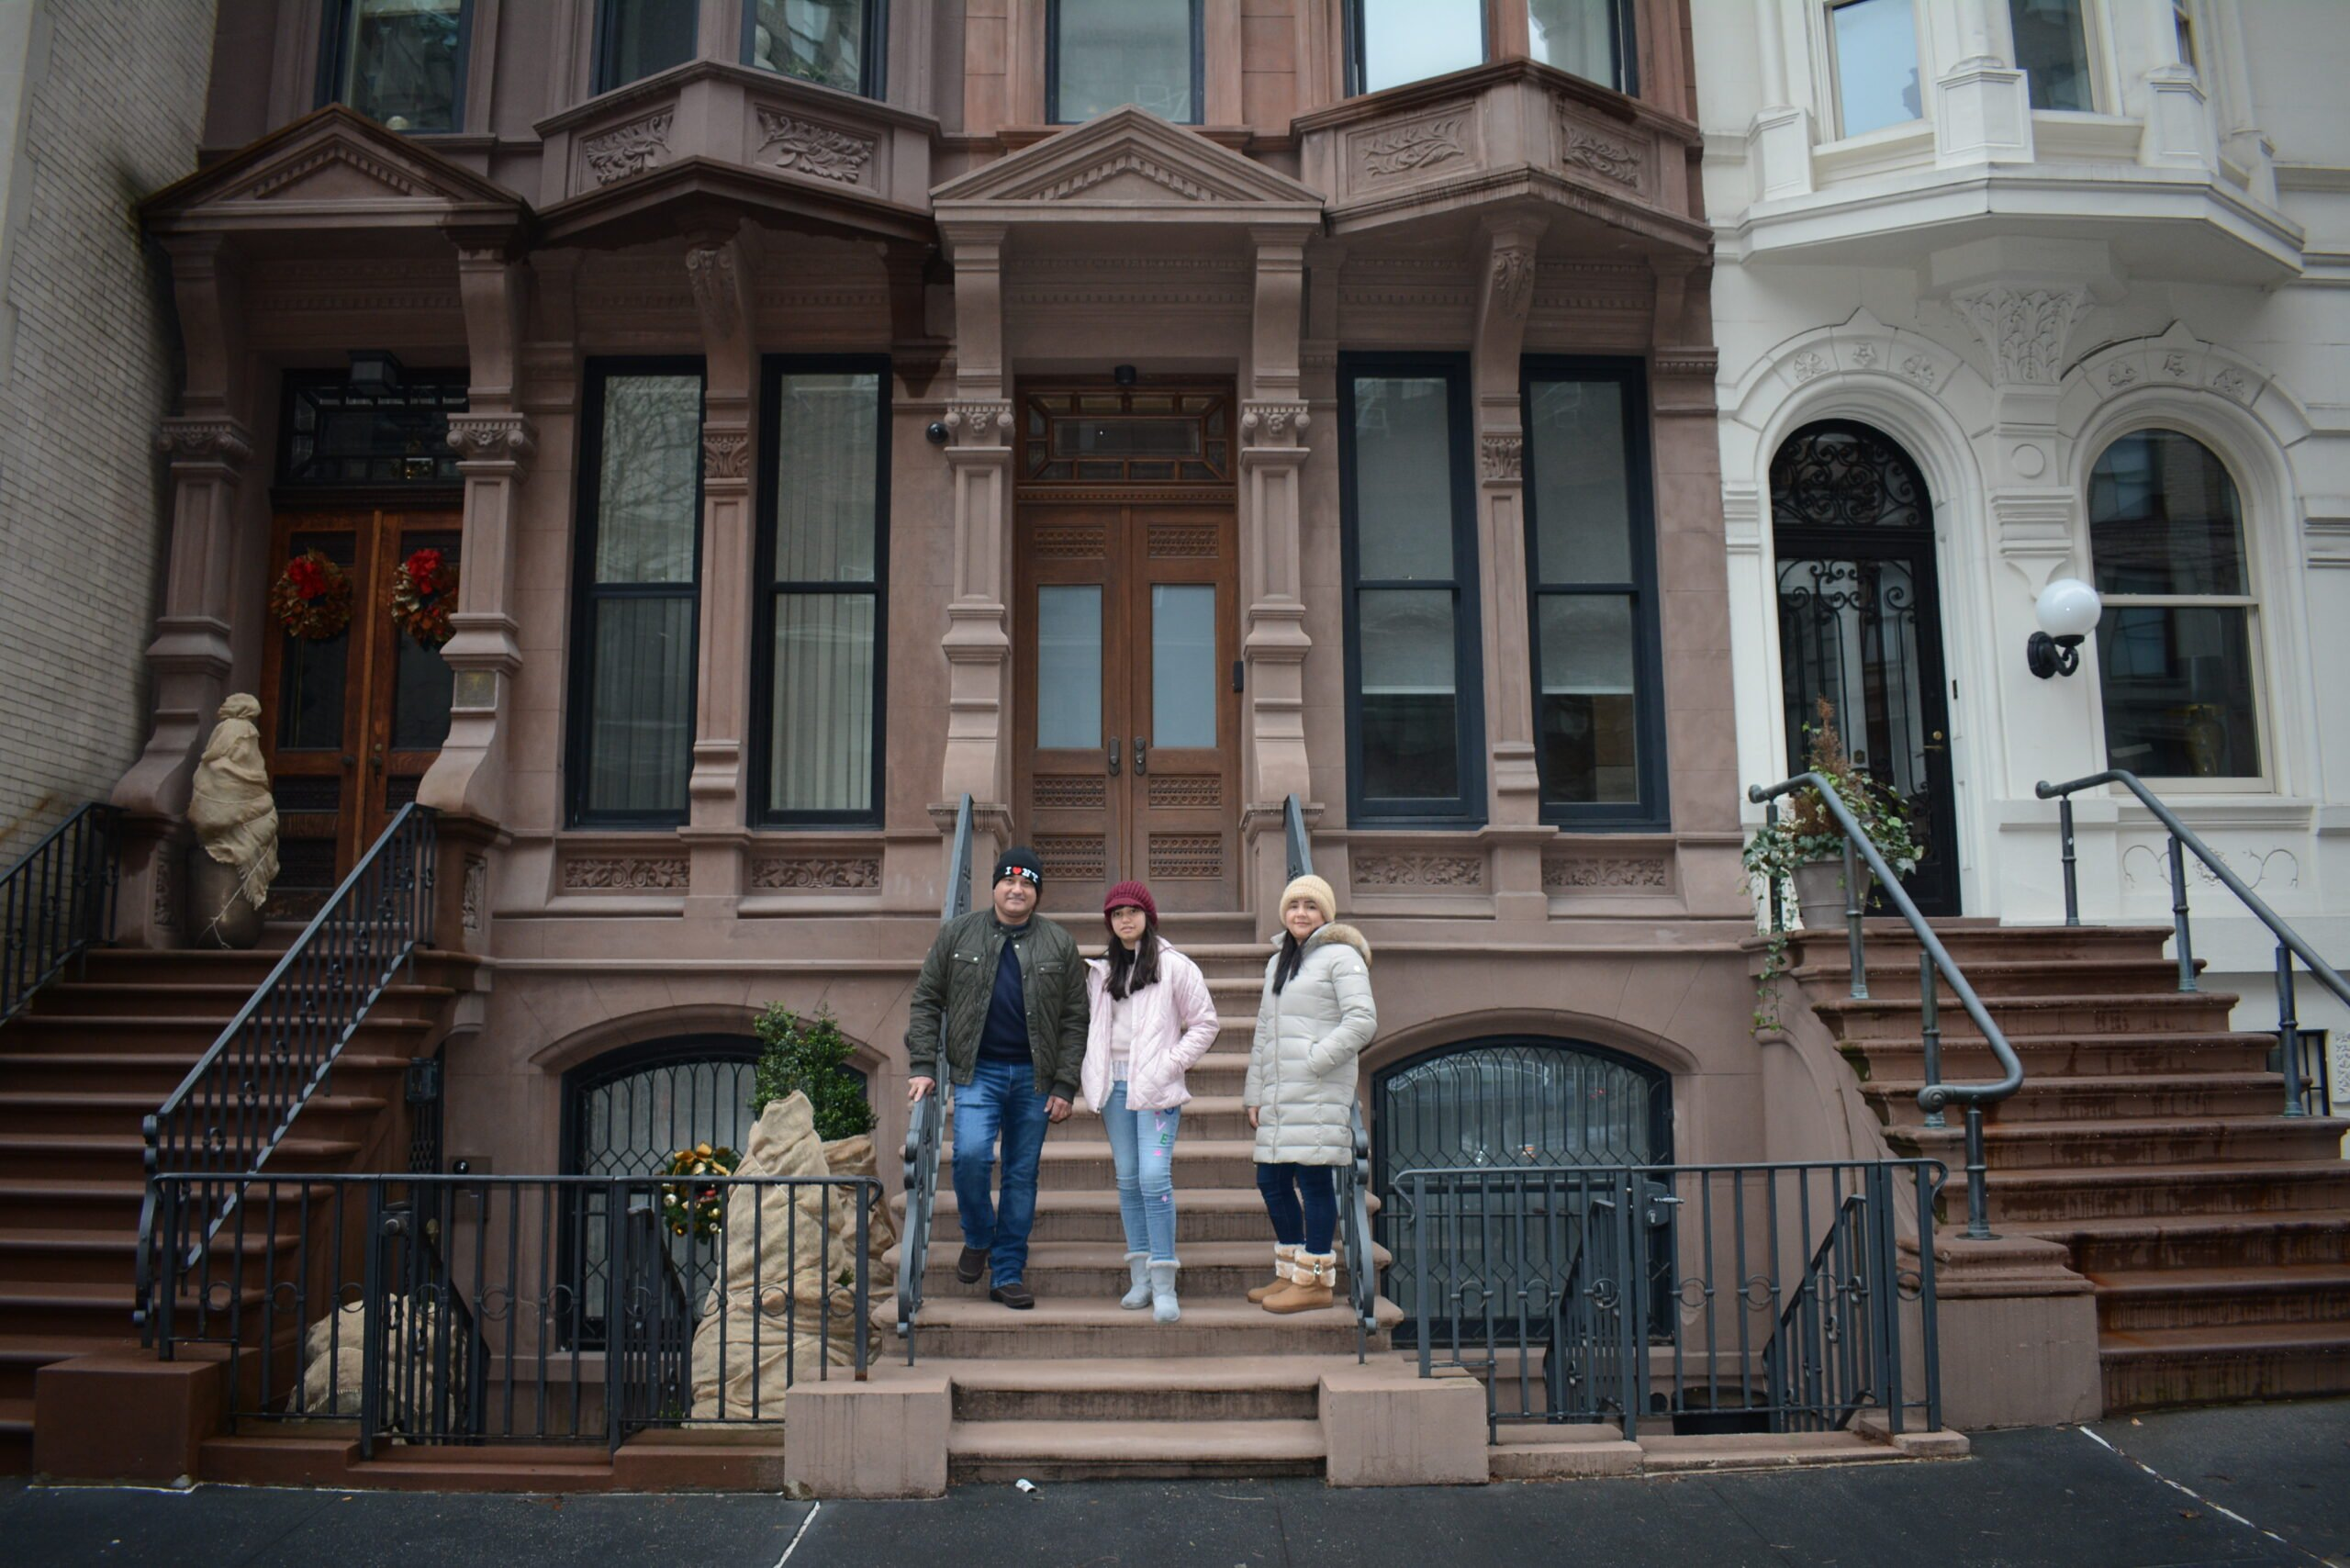 Upper East Side Brownstone on photoshoot in NYC